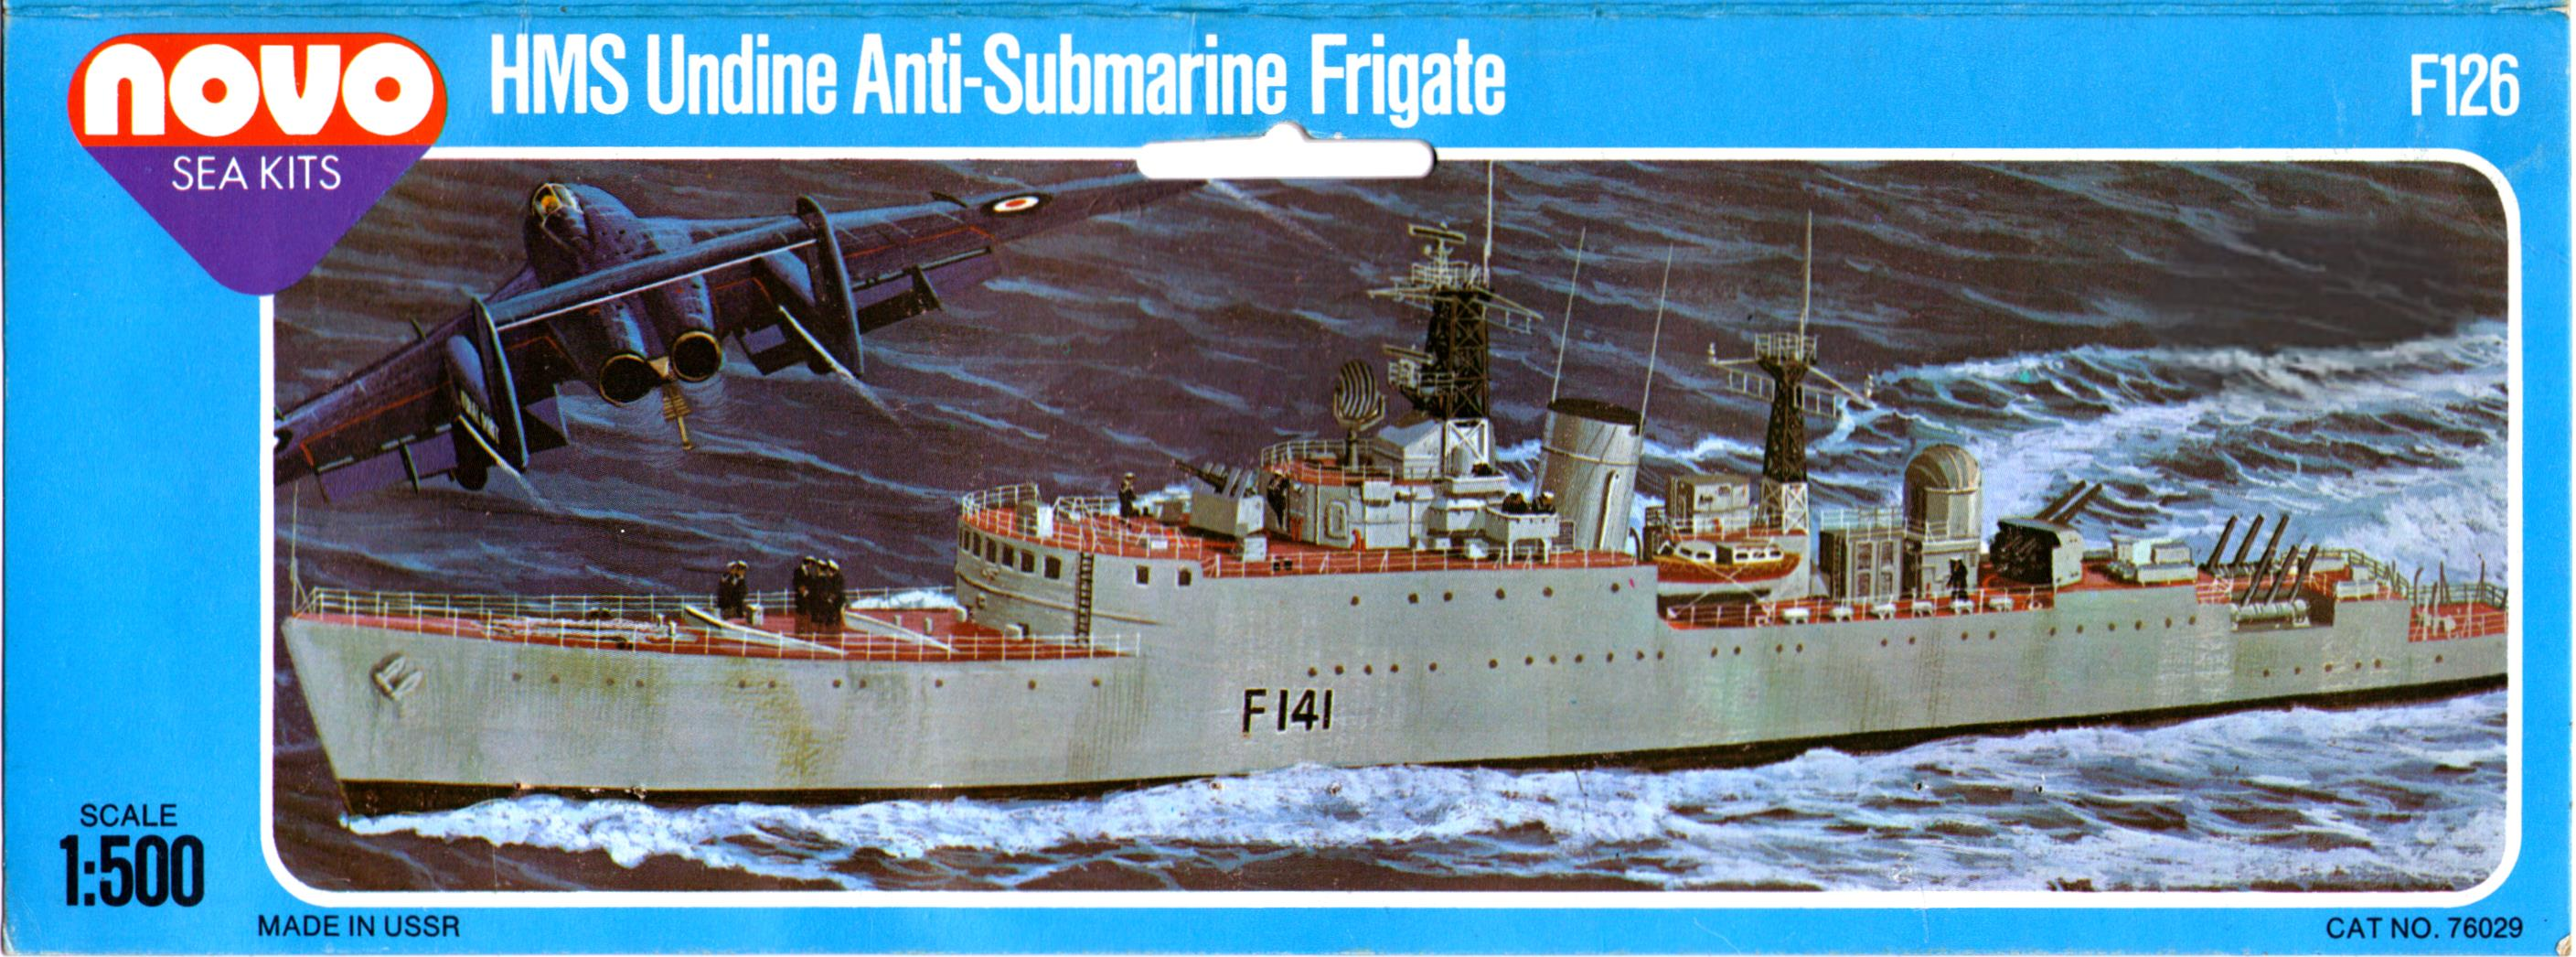 Лепесток NOVO Toys Ltd F126 Cat.No.76029 HMS Undine Anti-Submarine Frigate